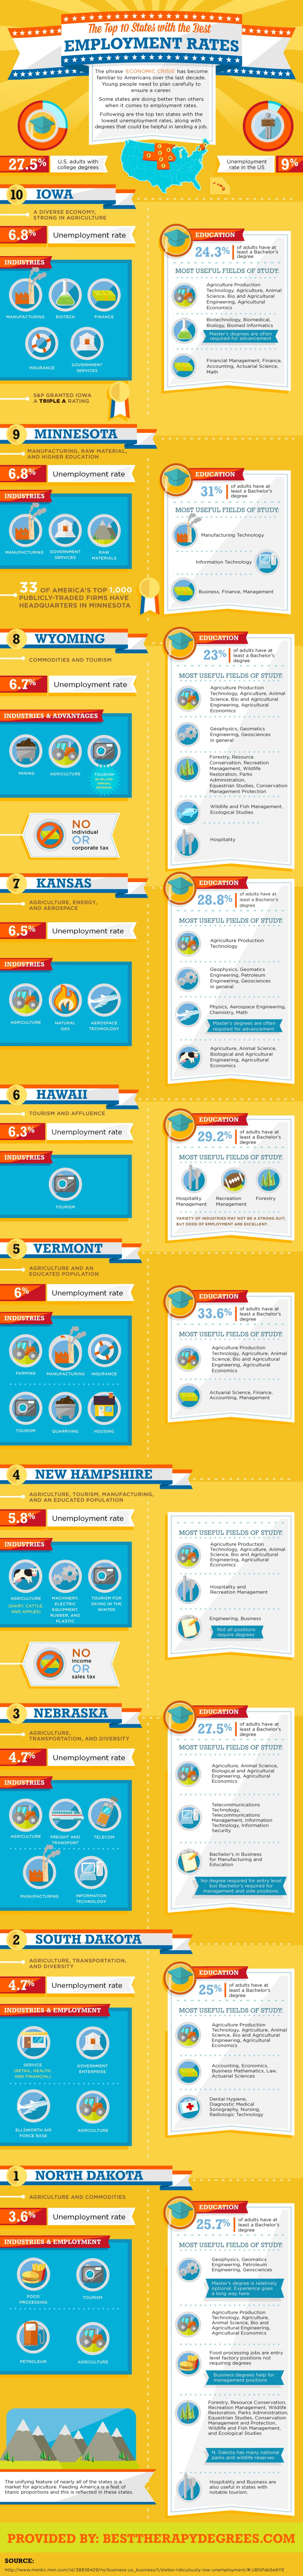 Top 10 States with the Best Employment Rates Infographic